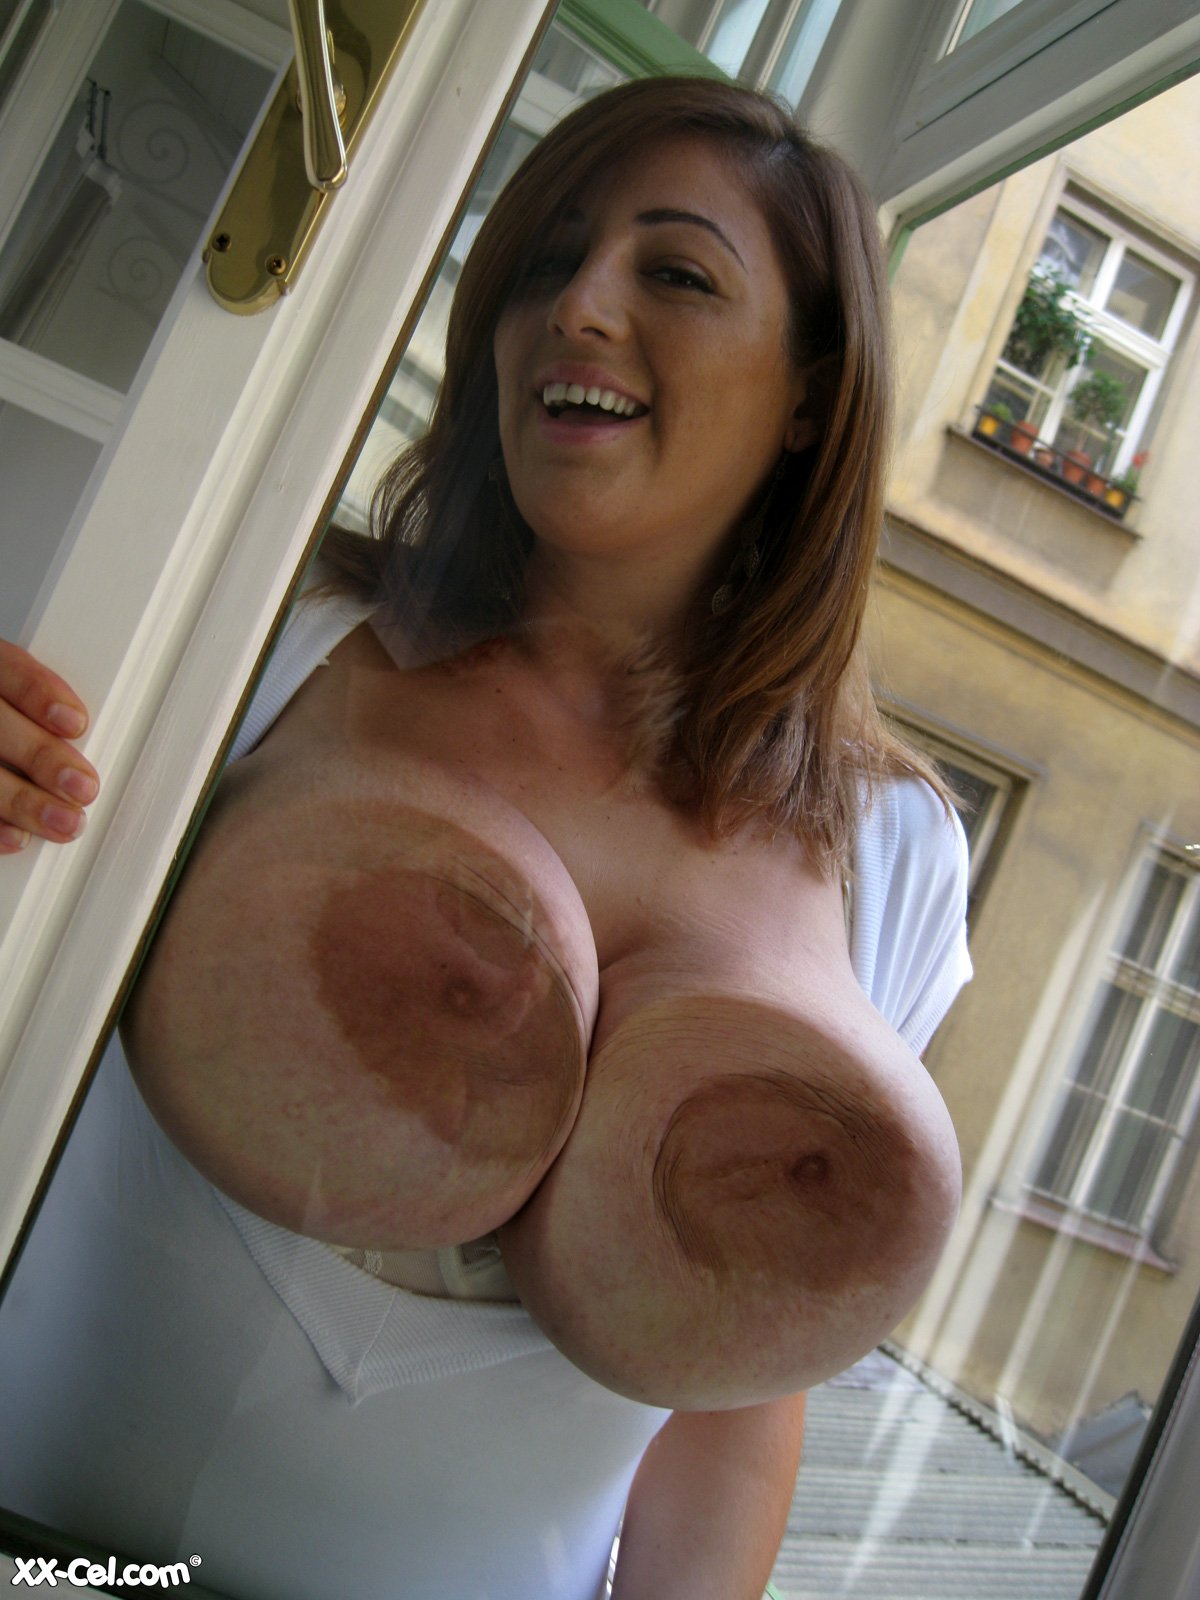 eden mor's huge brown areolas at busty girls blog